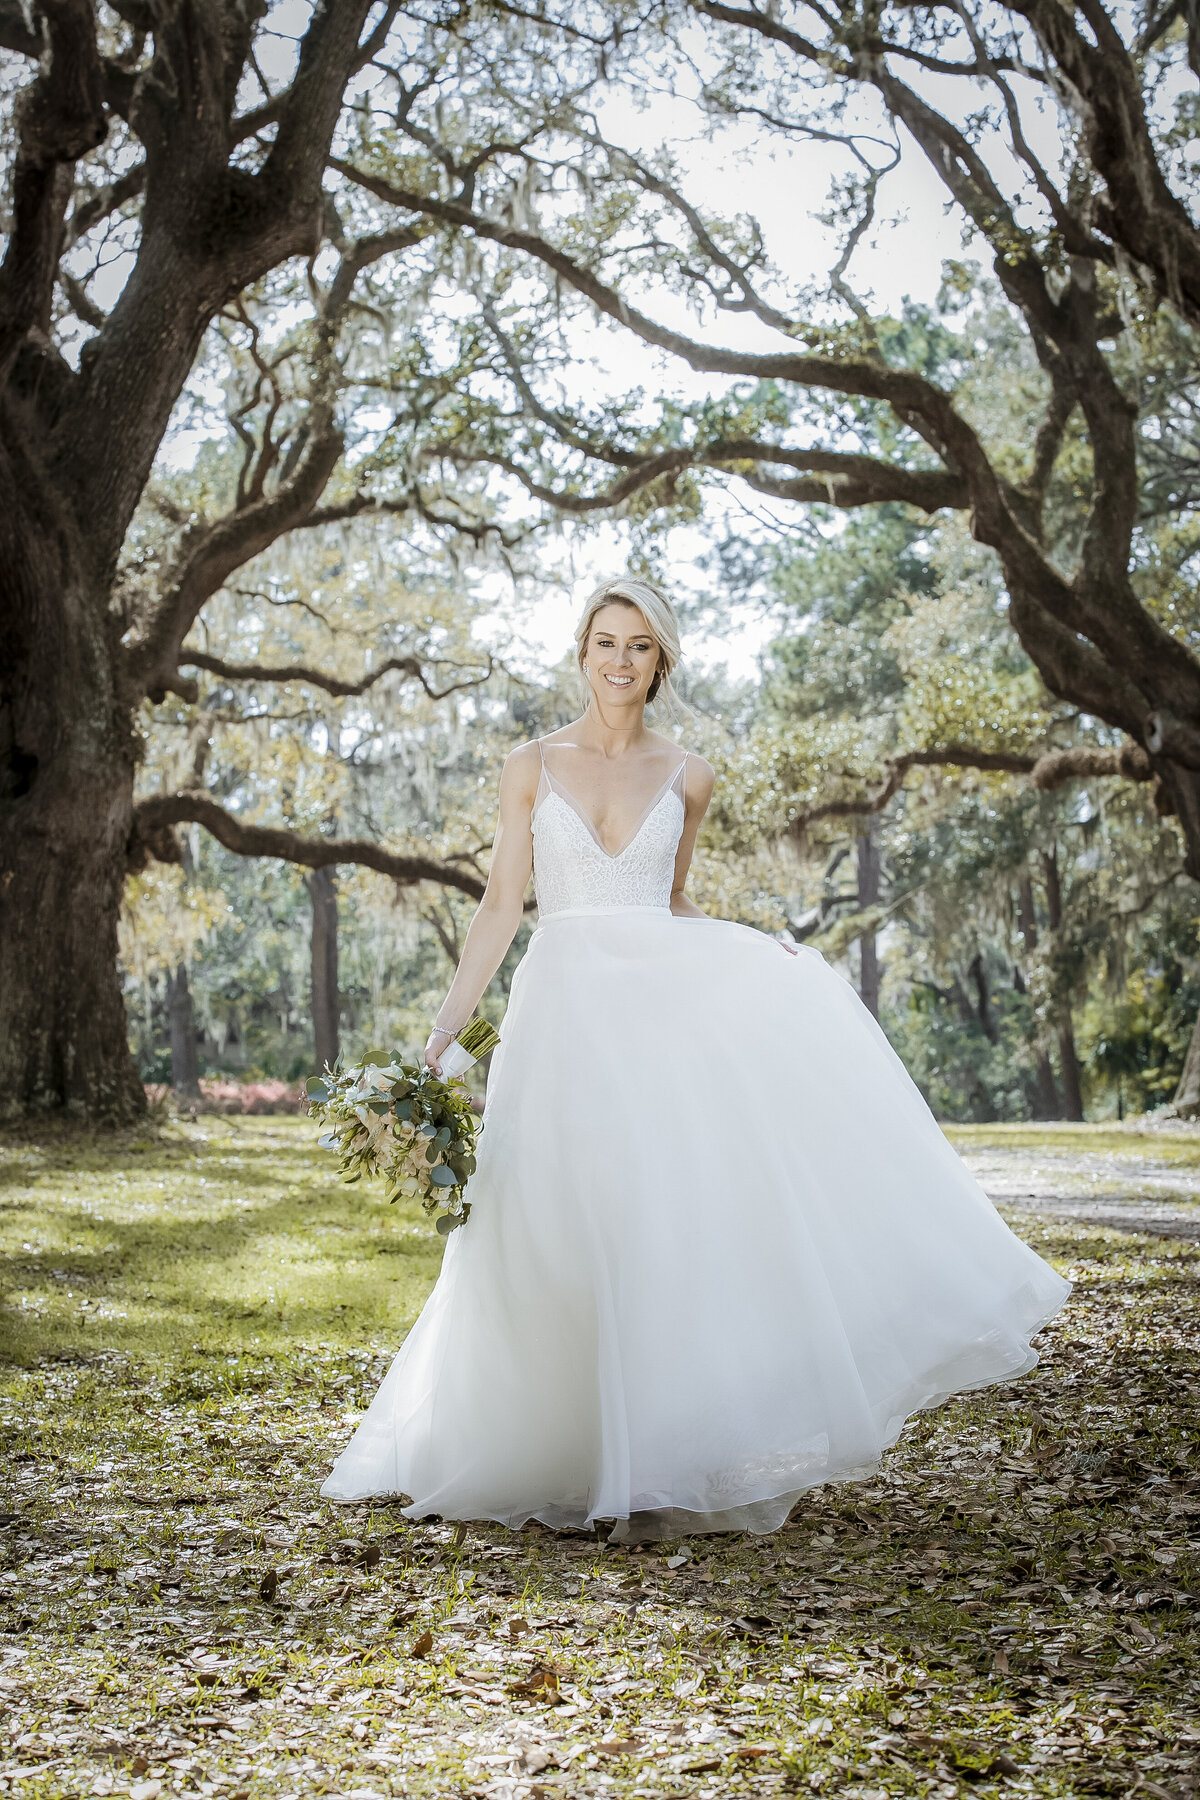 Lisa-Staff-Photographer-Hilton Head-photographer-1122